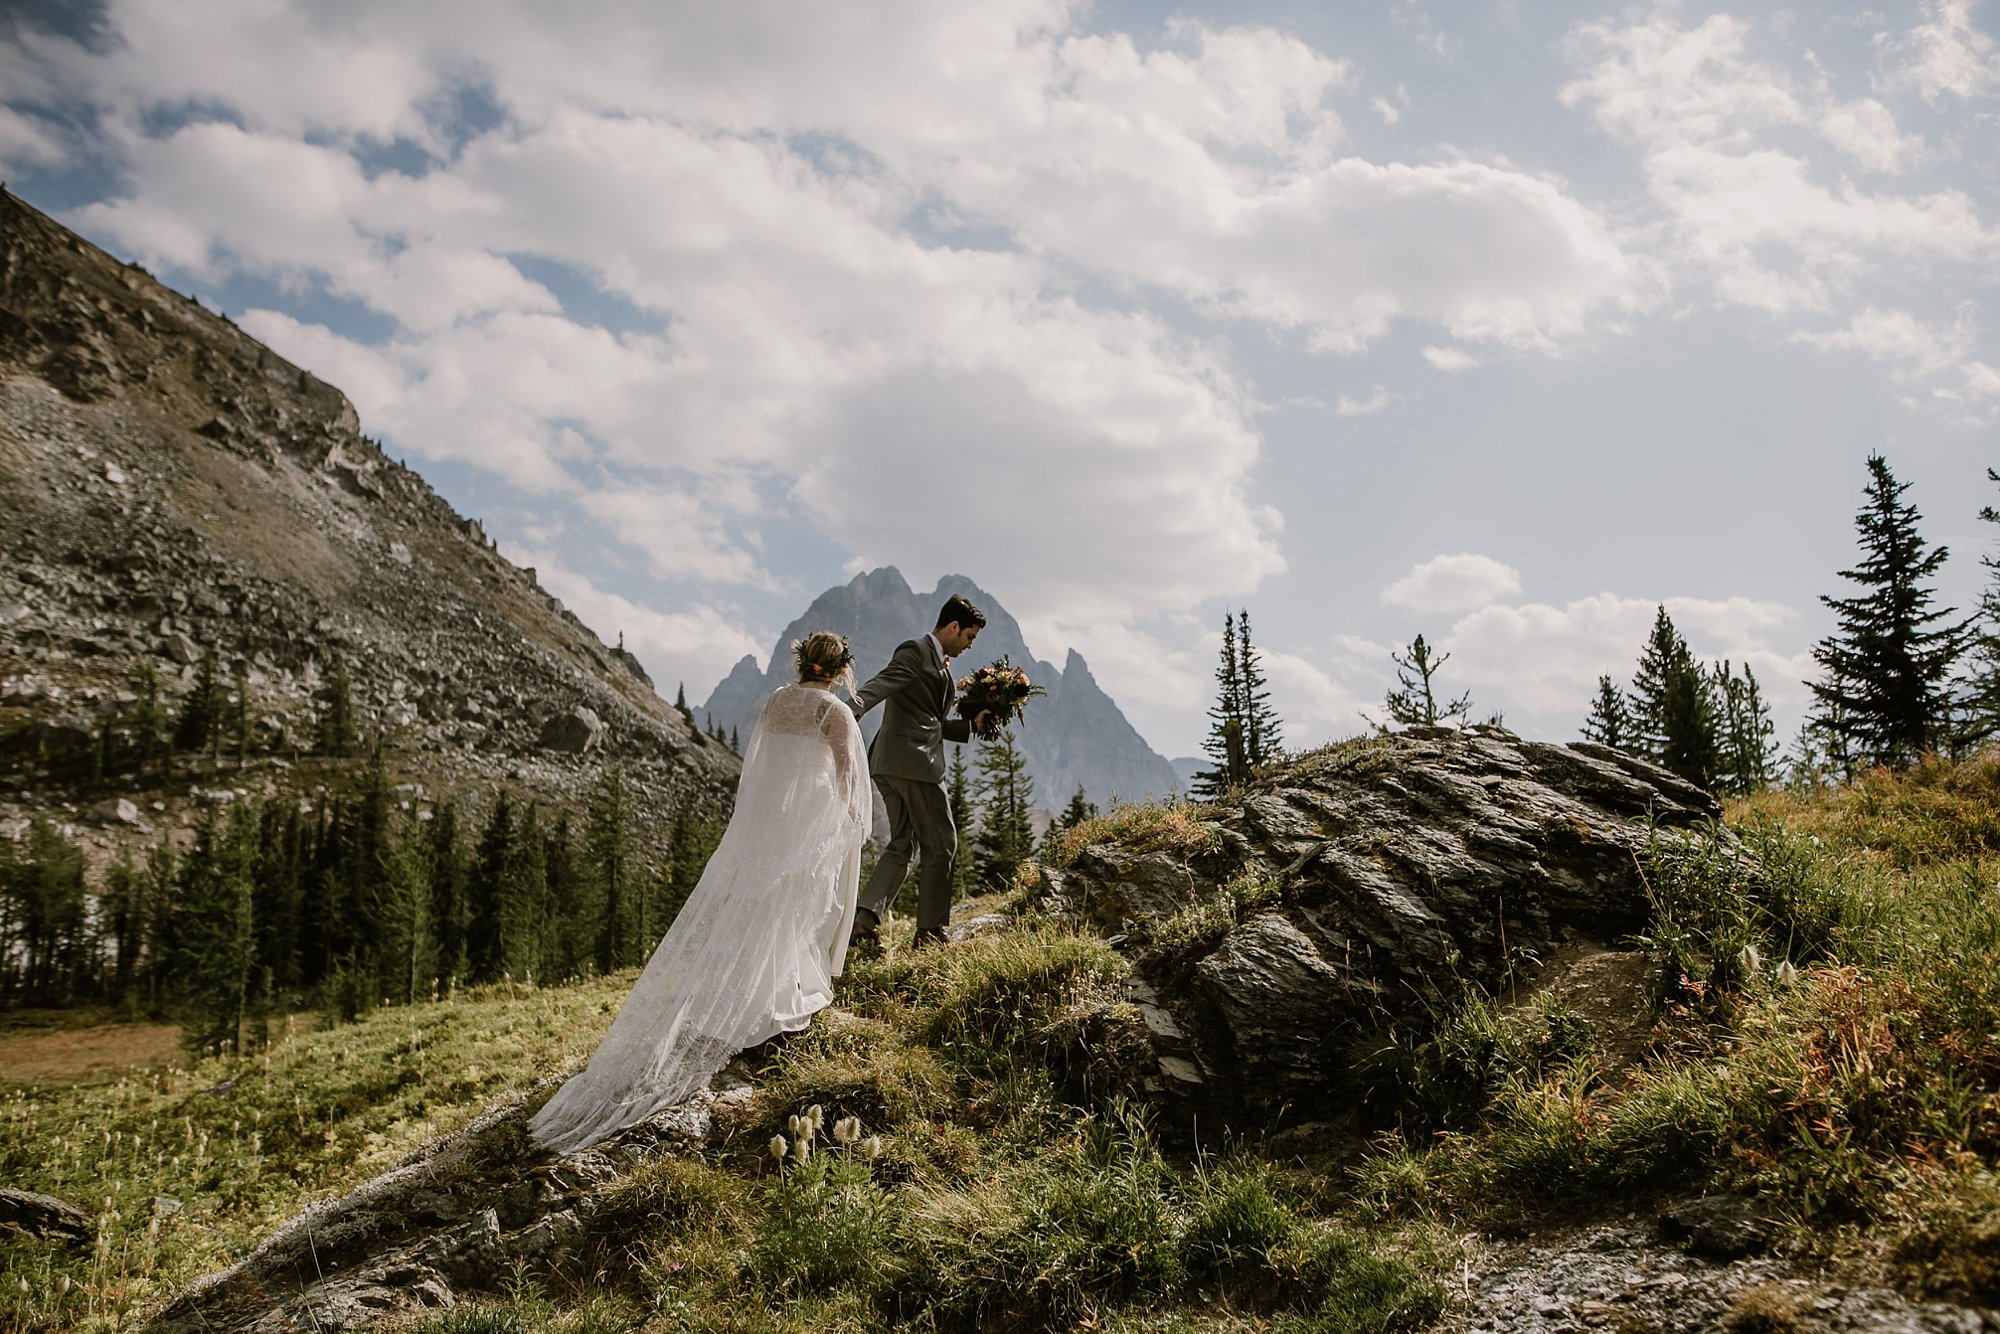 banff-canada-elopement-wedding_0019.jpg